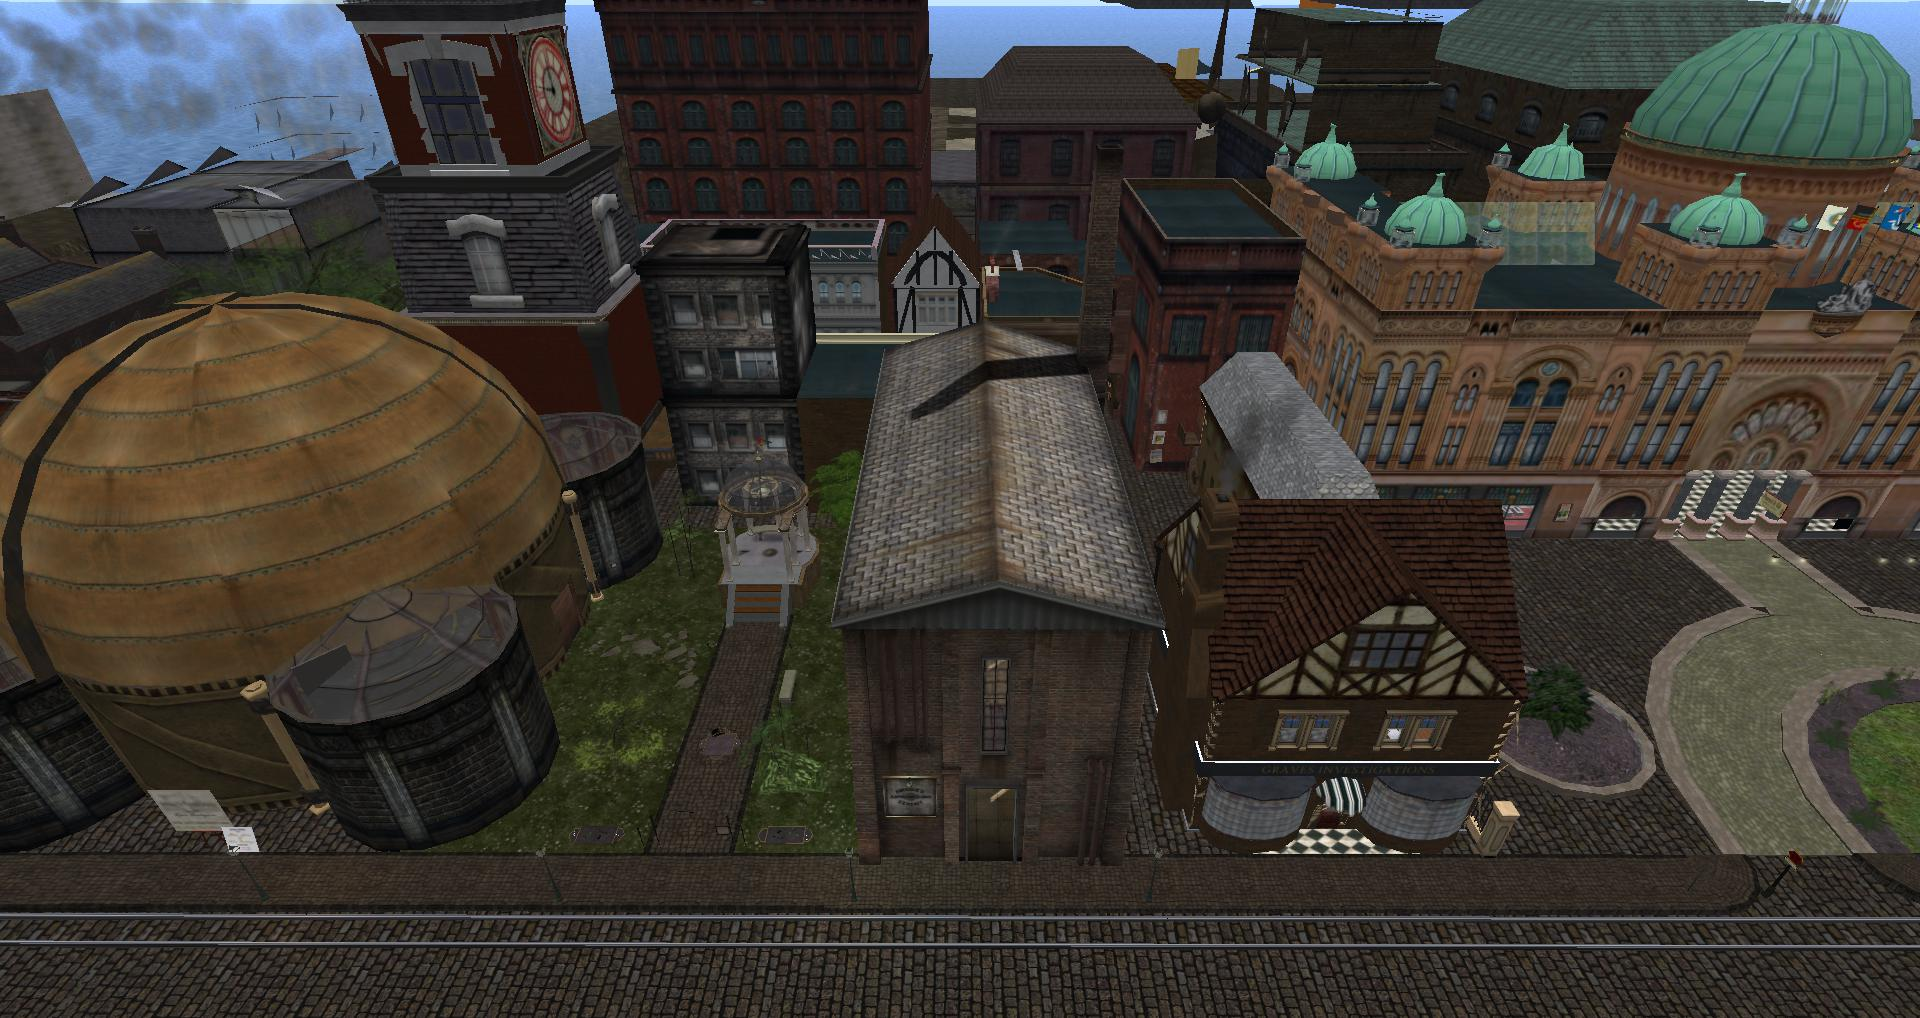 Fosdick's Astrobiology Exhibit virtual building (the eyesore building on the left, next to the quaint, inviting-looking building) in the steampunk City of New Babbage in Second Life (coordinates: 213, 57, 106).